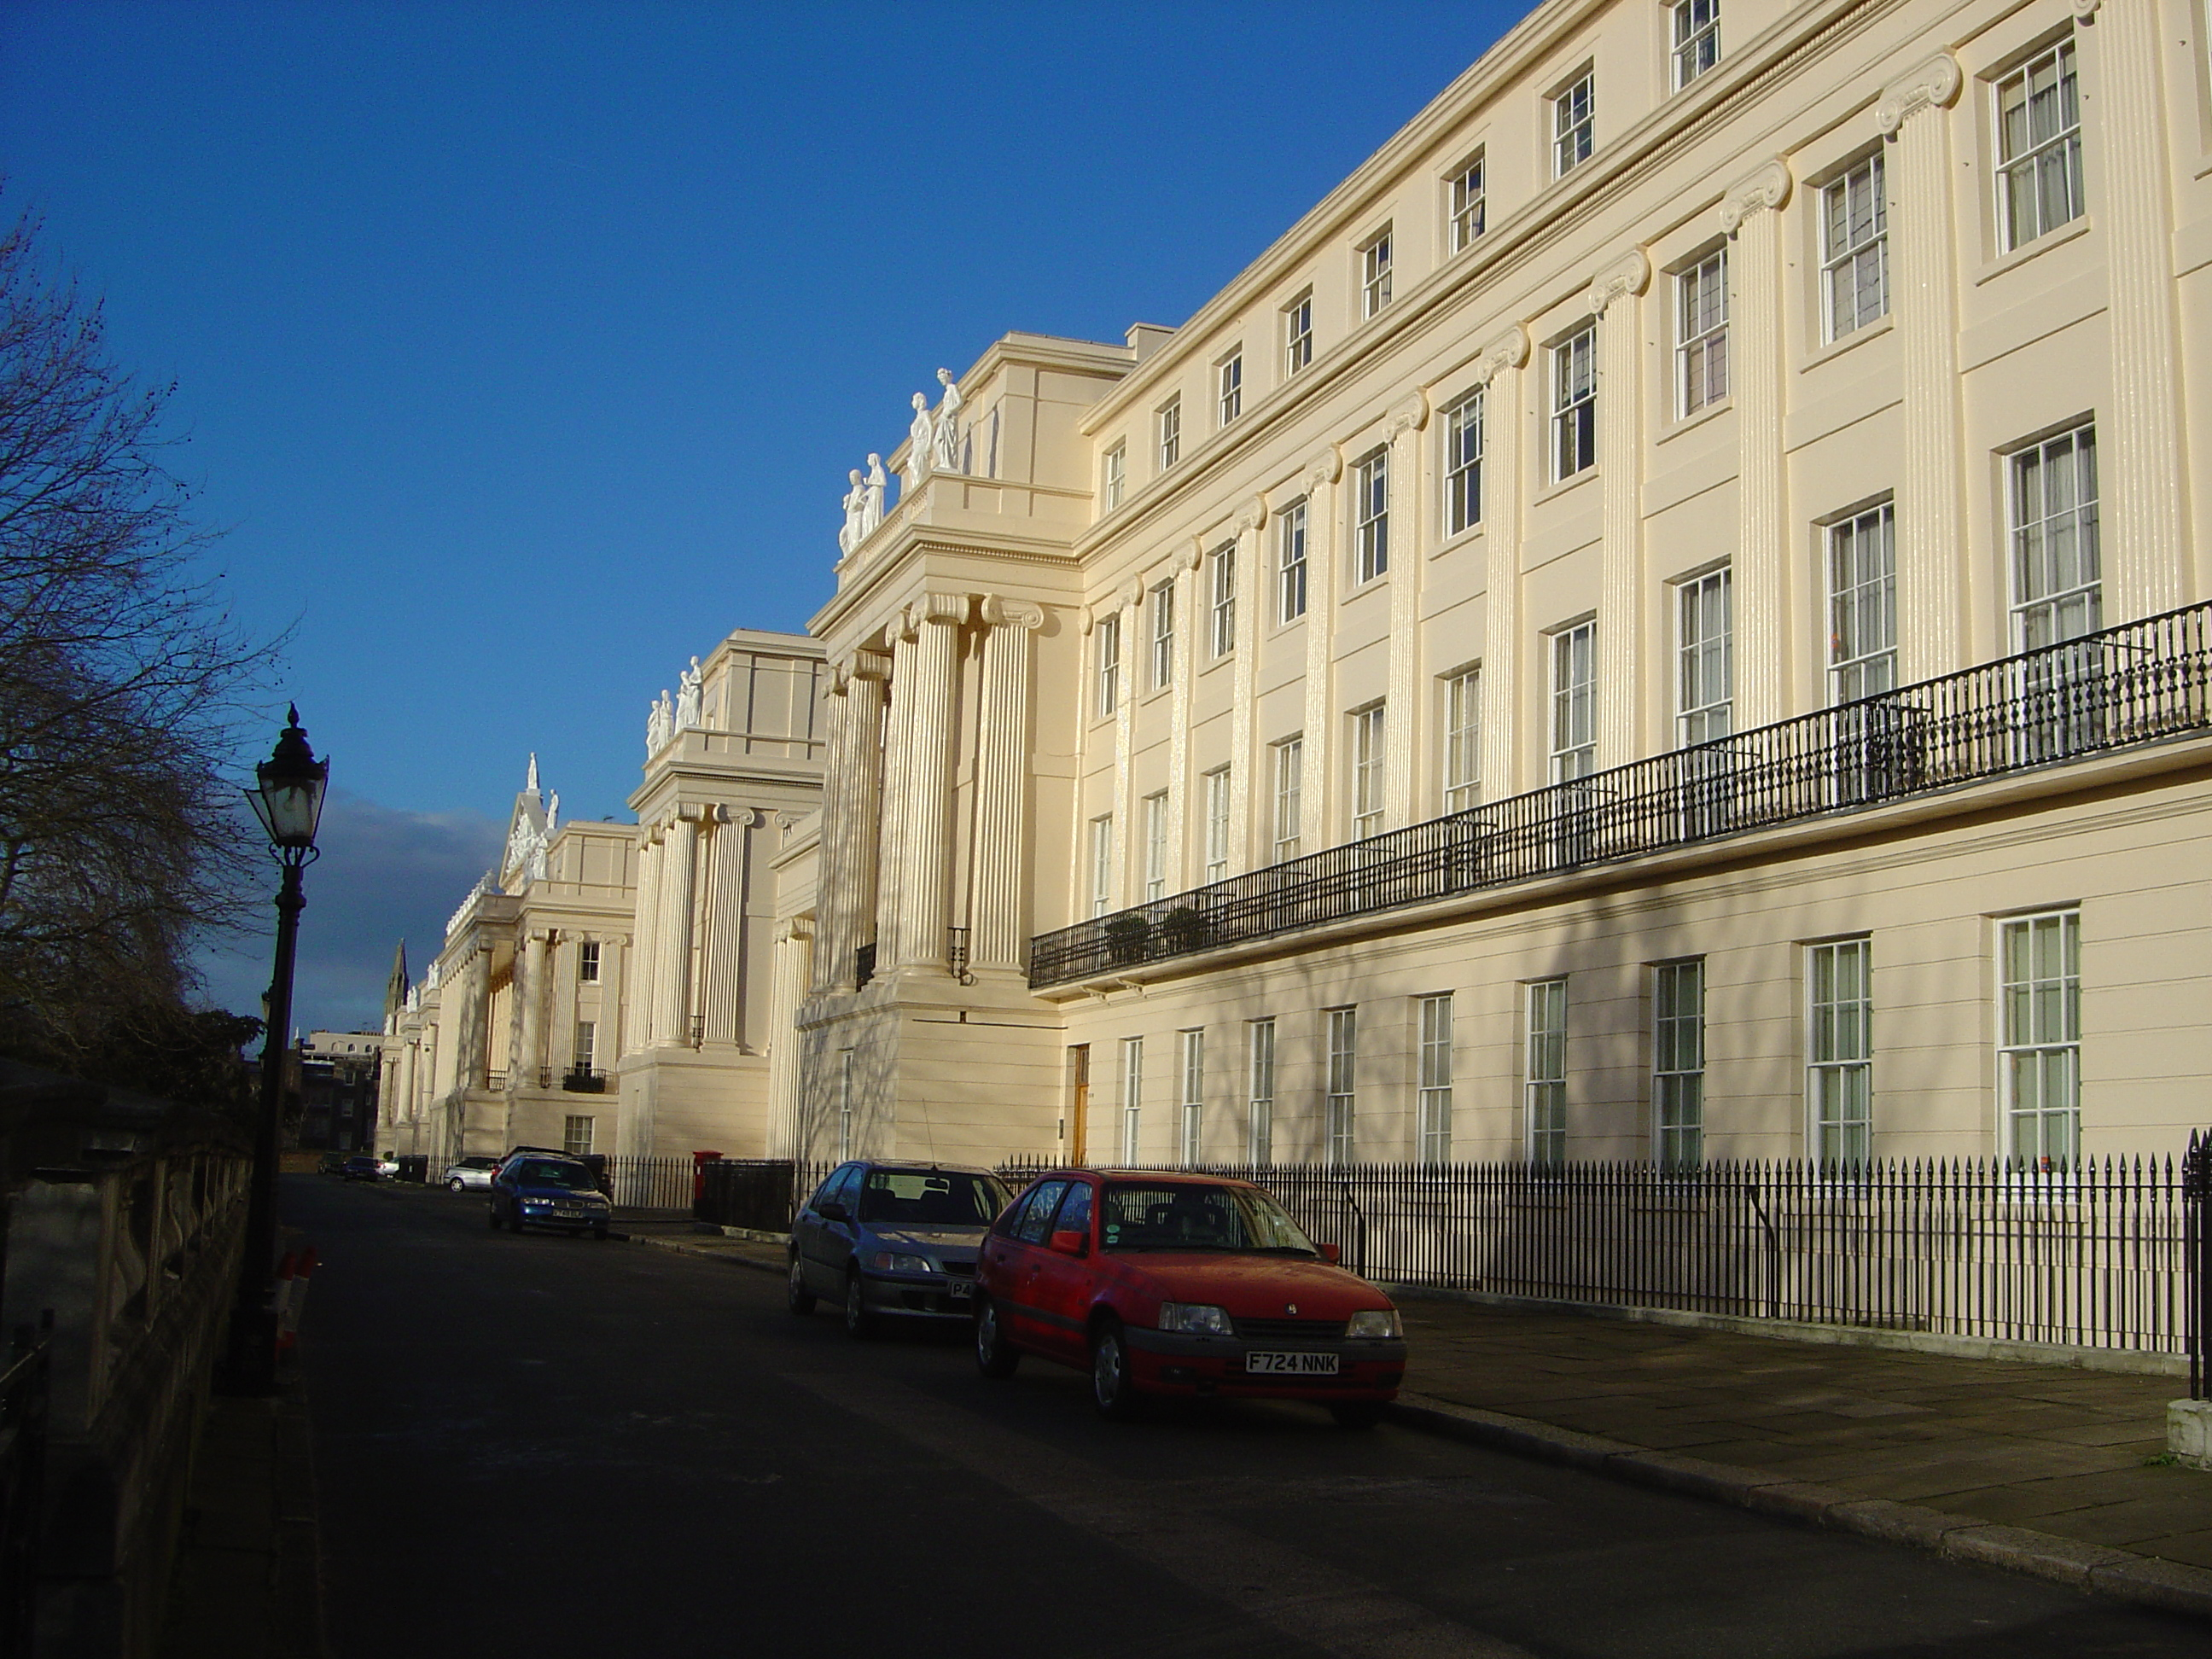 bae366725 Regency architecture. From Wikipedia ...